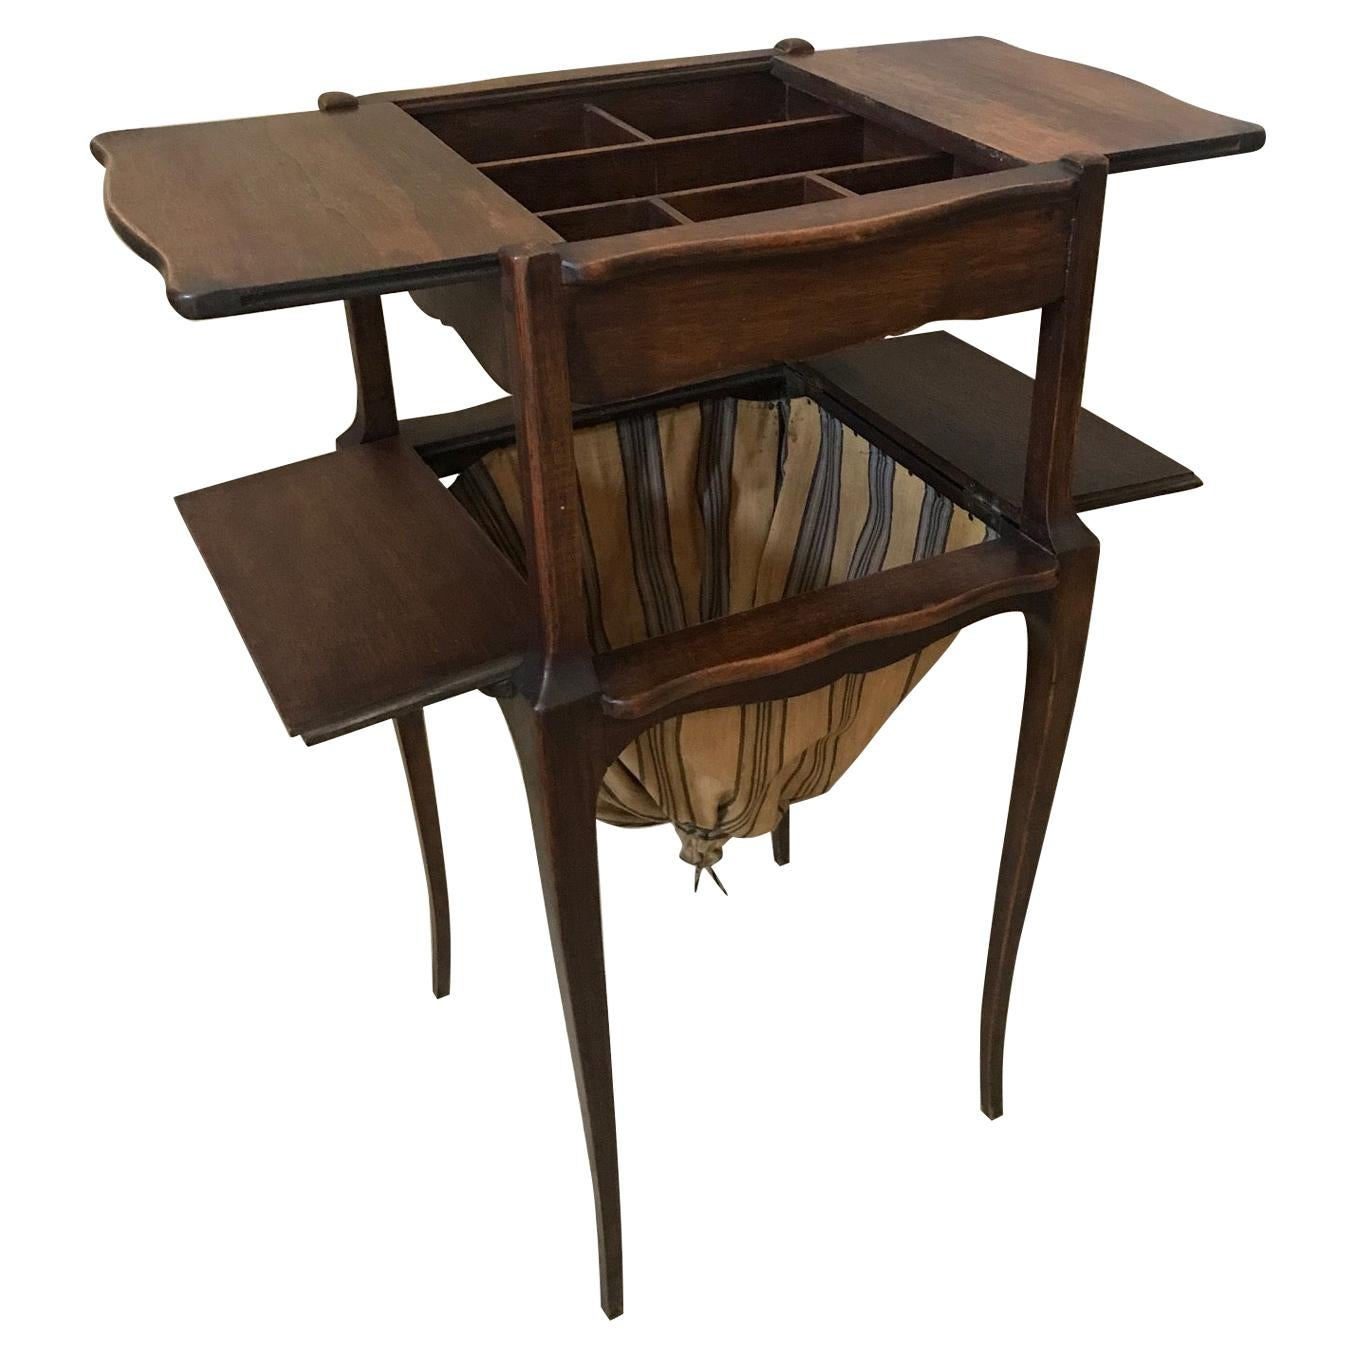 20th Century French Walnut Sewing Table, 1920s